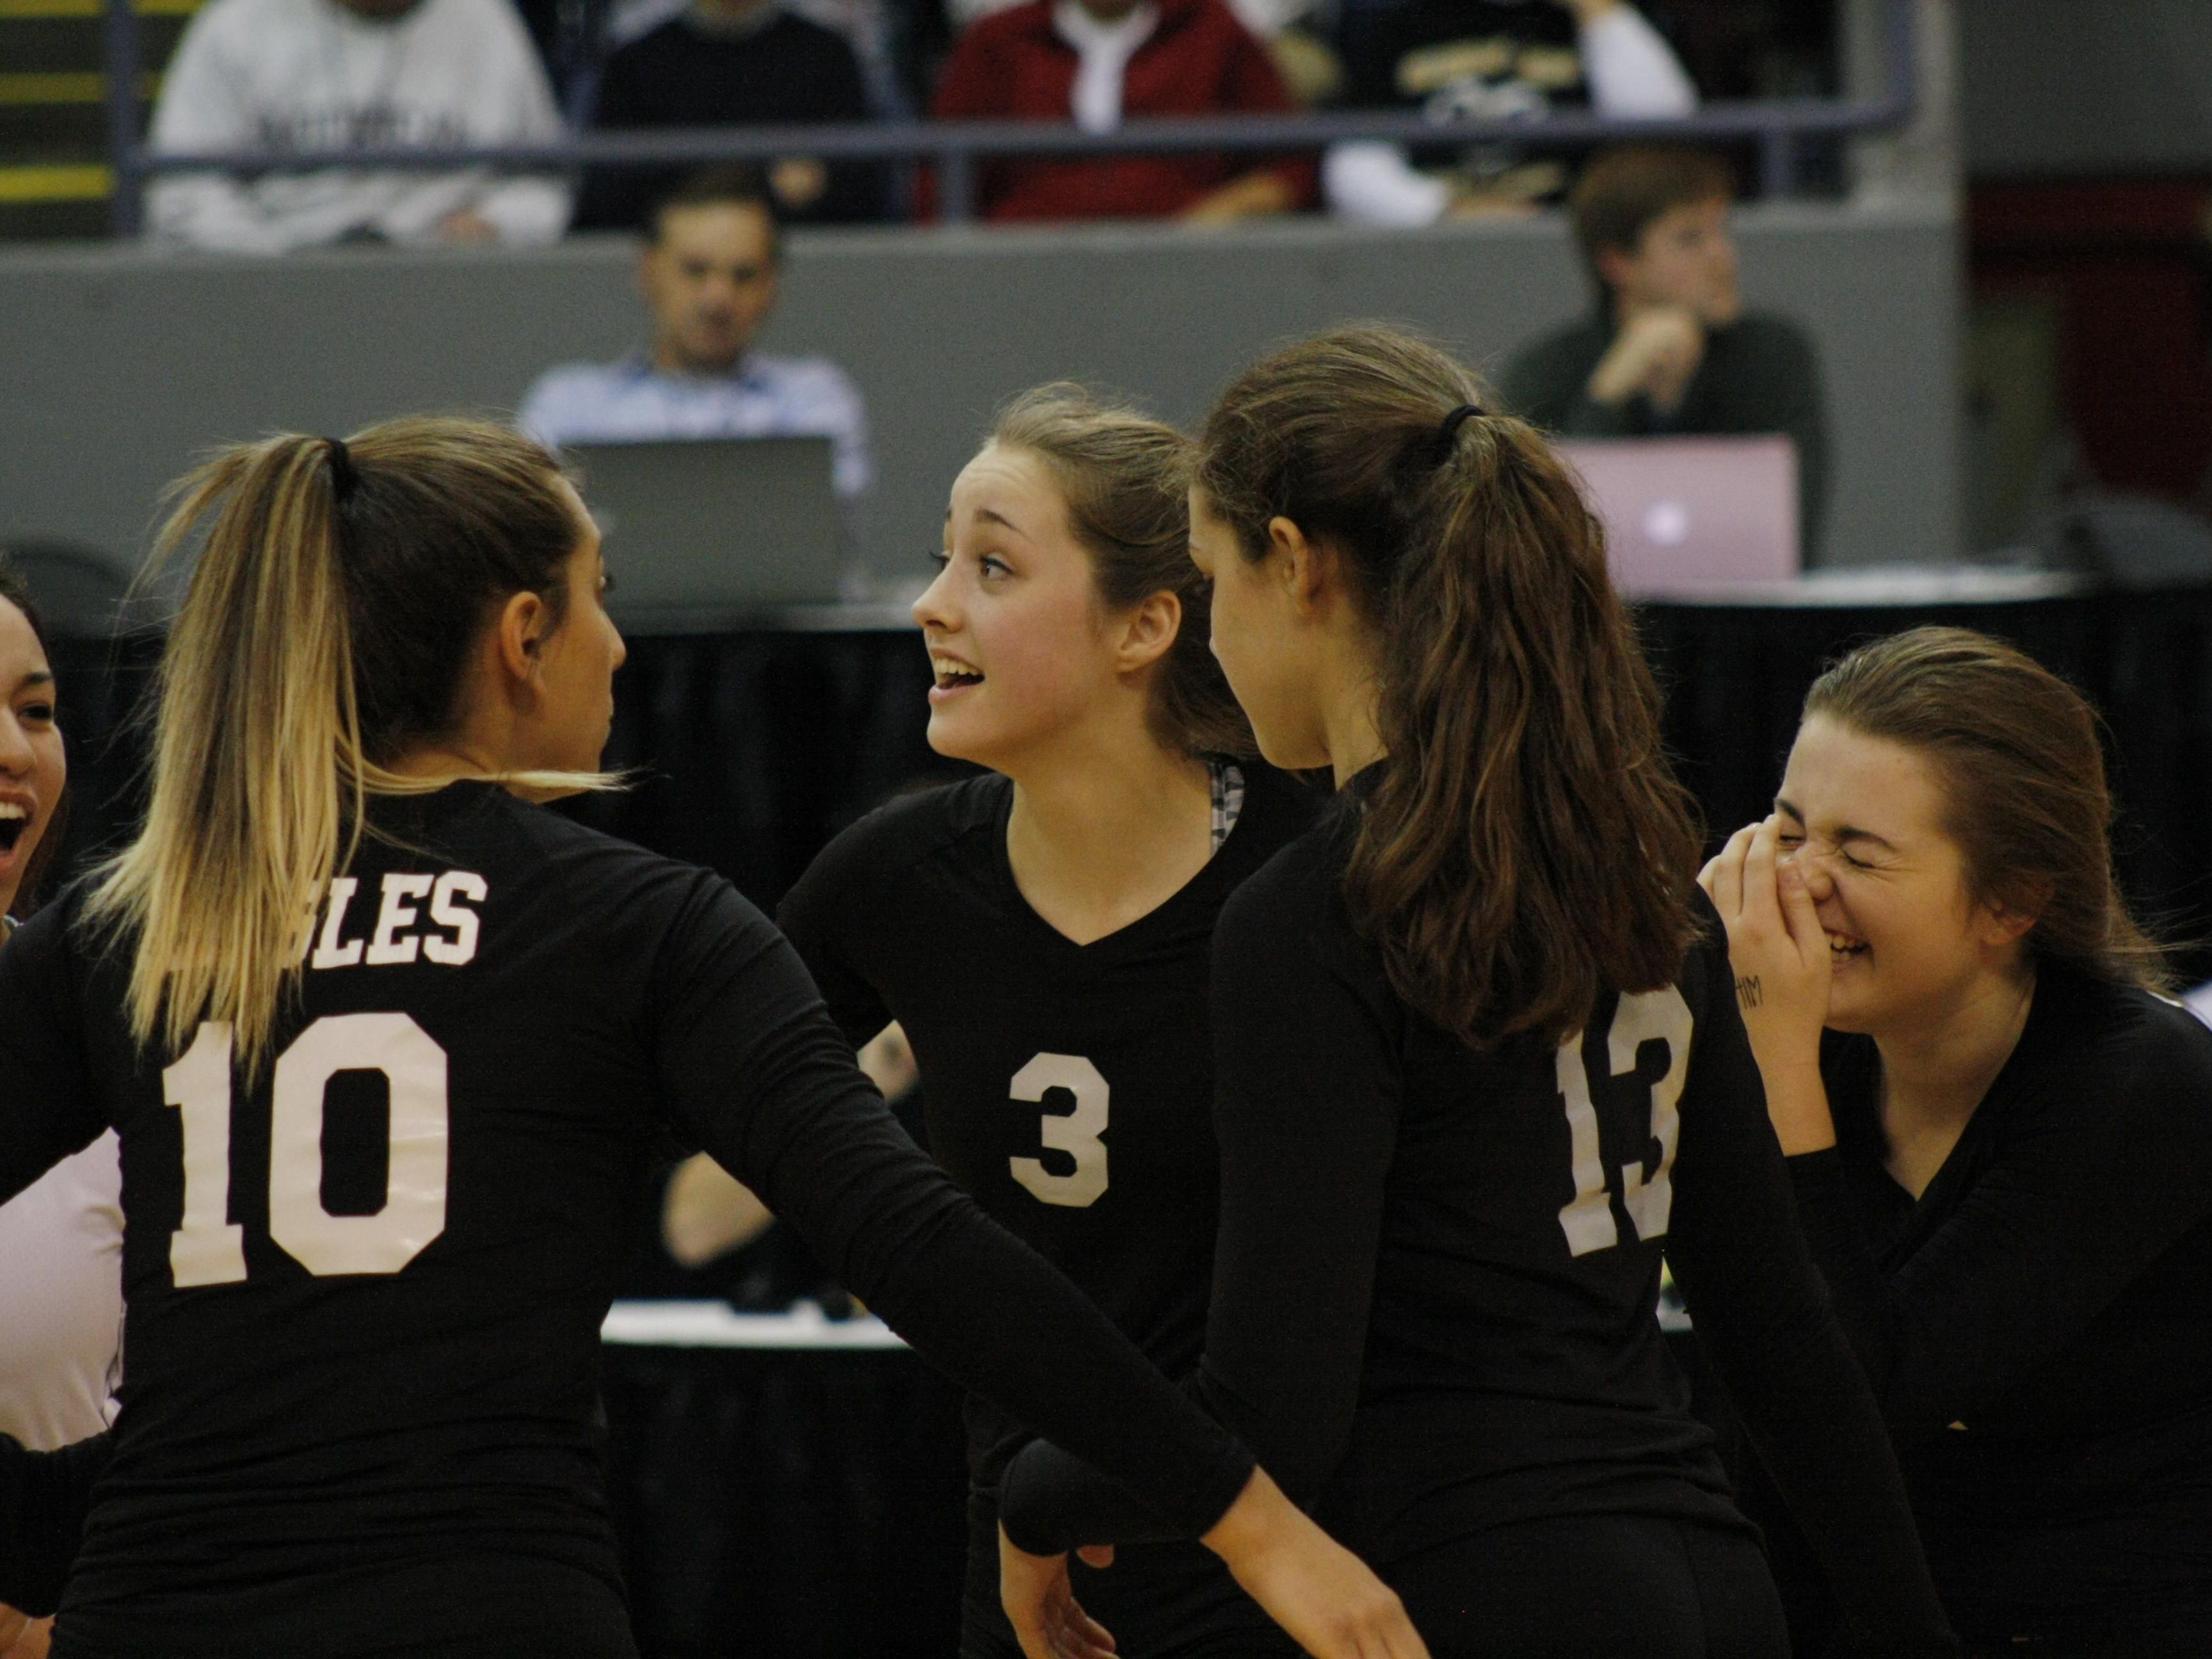 From left, Plymouth Christian's Ruth Doty, Grace Kellogg and Gabriella Kellogg celebrate a won point Friday during the third set of their semifinal win over Leland.